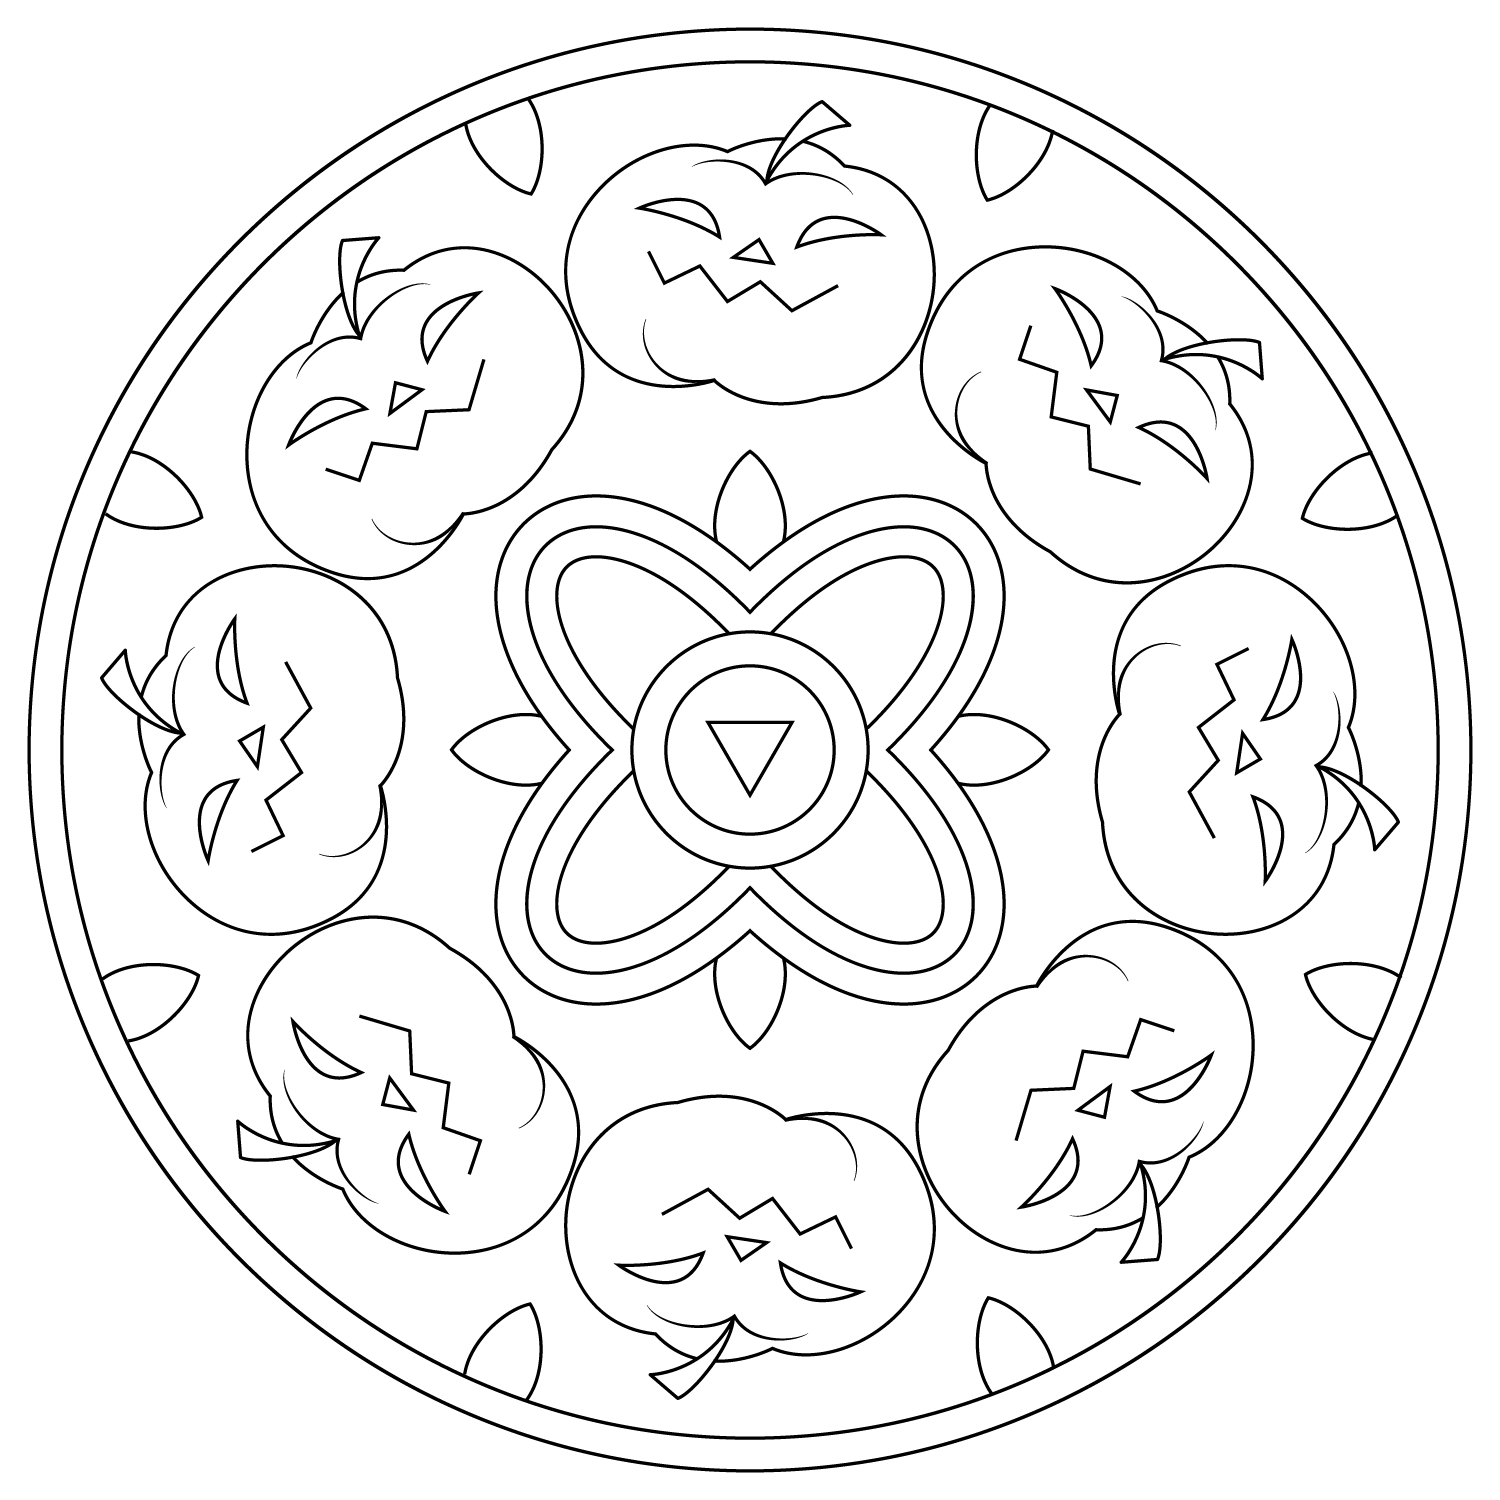 halloween mandala coloring pages halloween mandala with a witch in the village coloring pages coloring halloween mandala